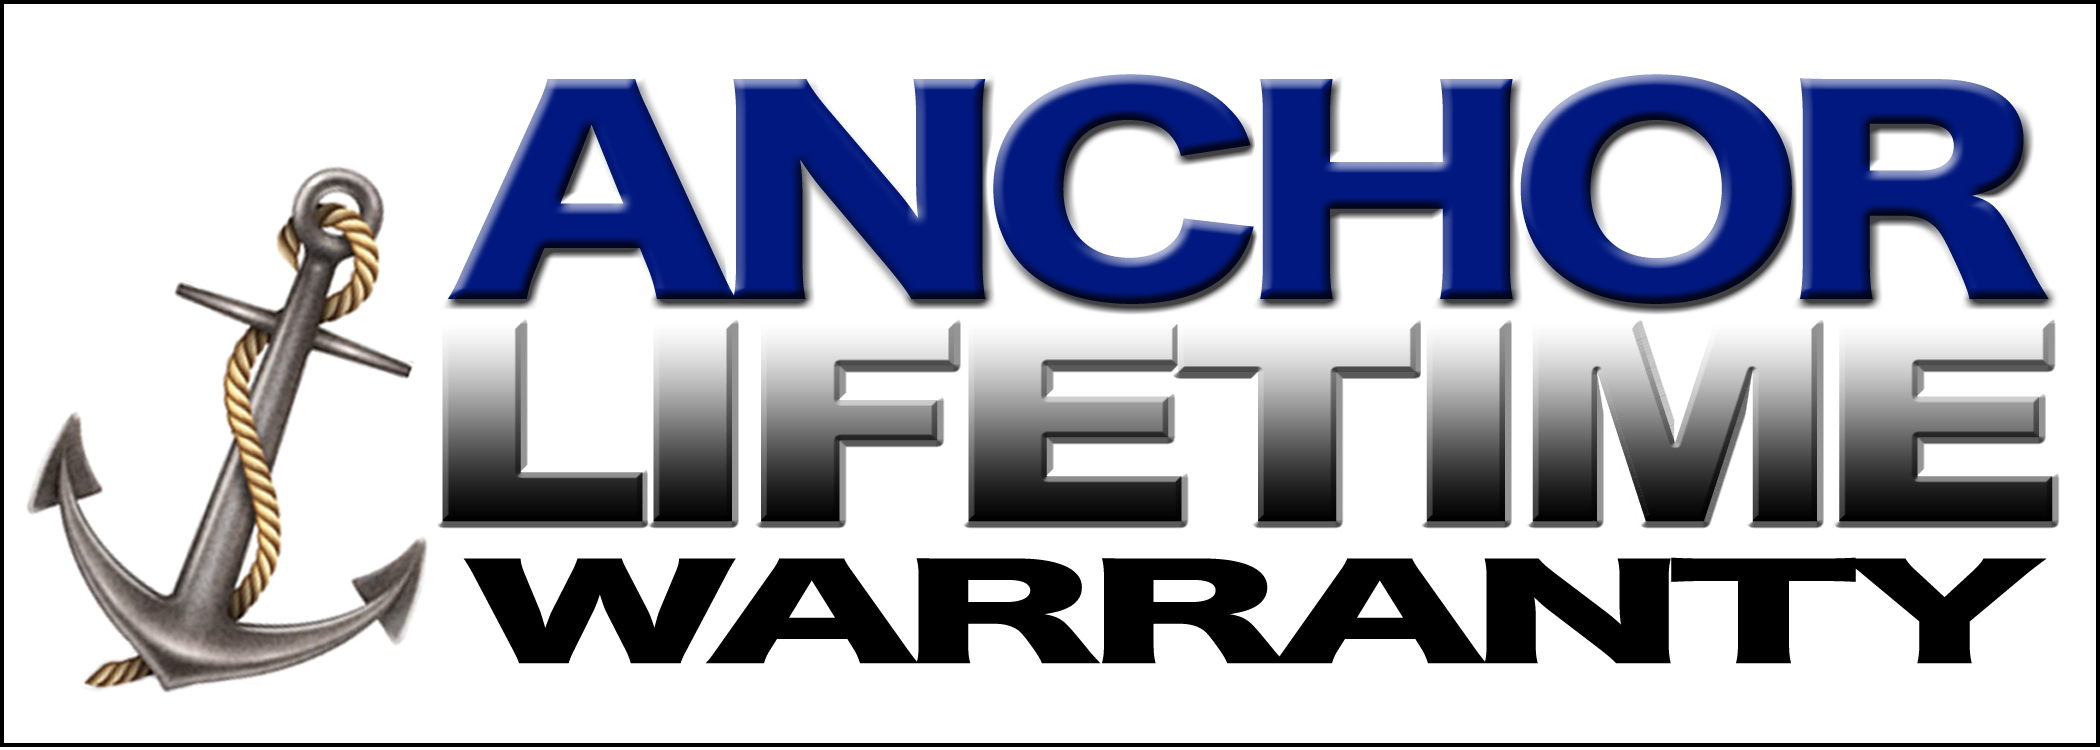 check out the details of our lifetime warranty program at Anchor Subaru